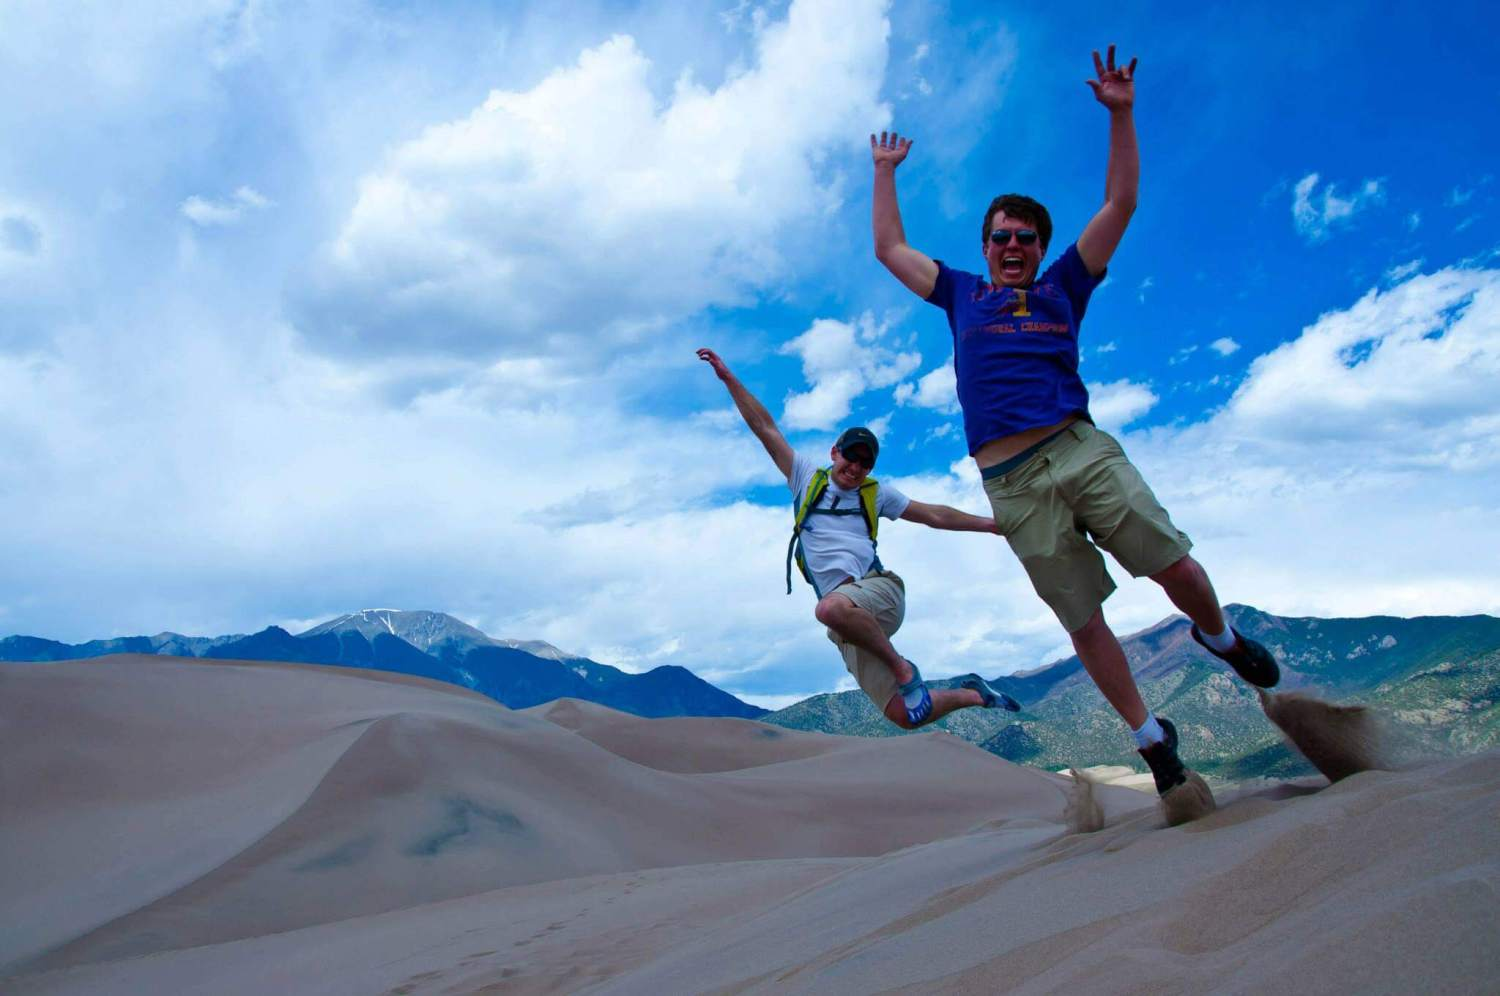 Adam and Andrew in an Action Shot at Great Sand Dunes National Park and Preserve in Colorado.